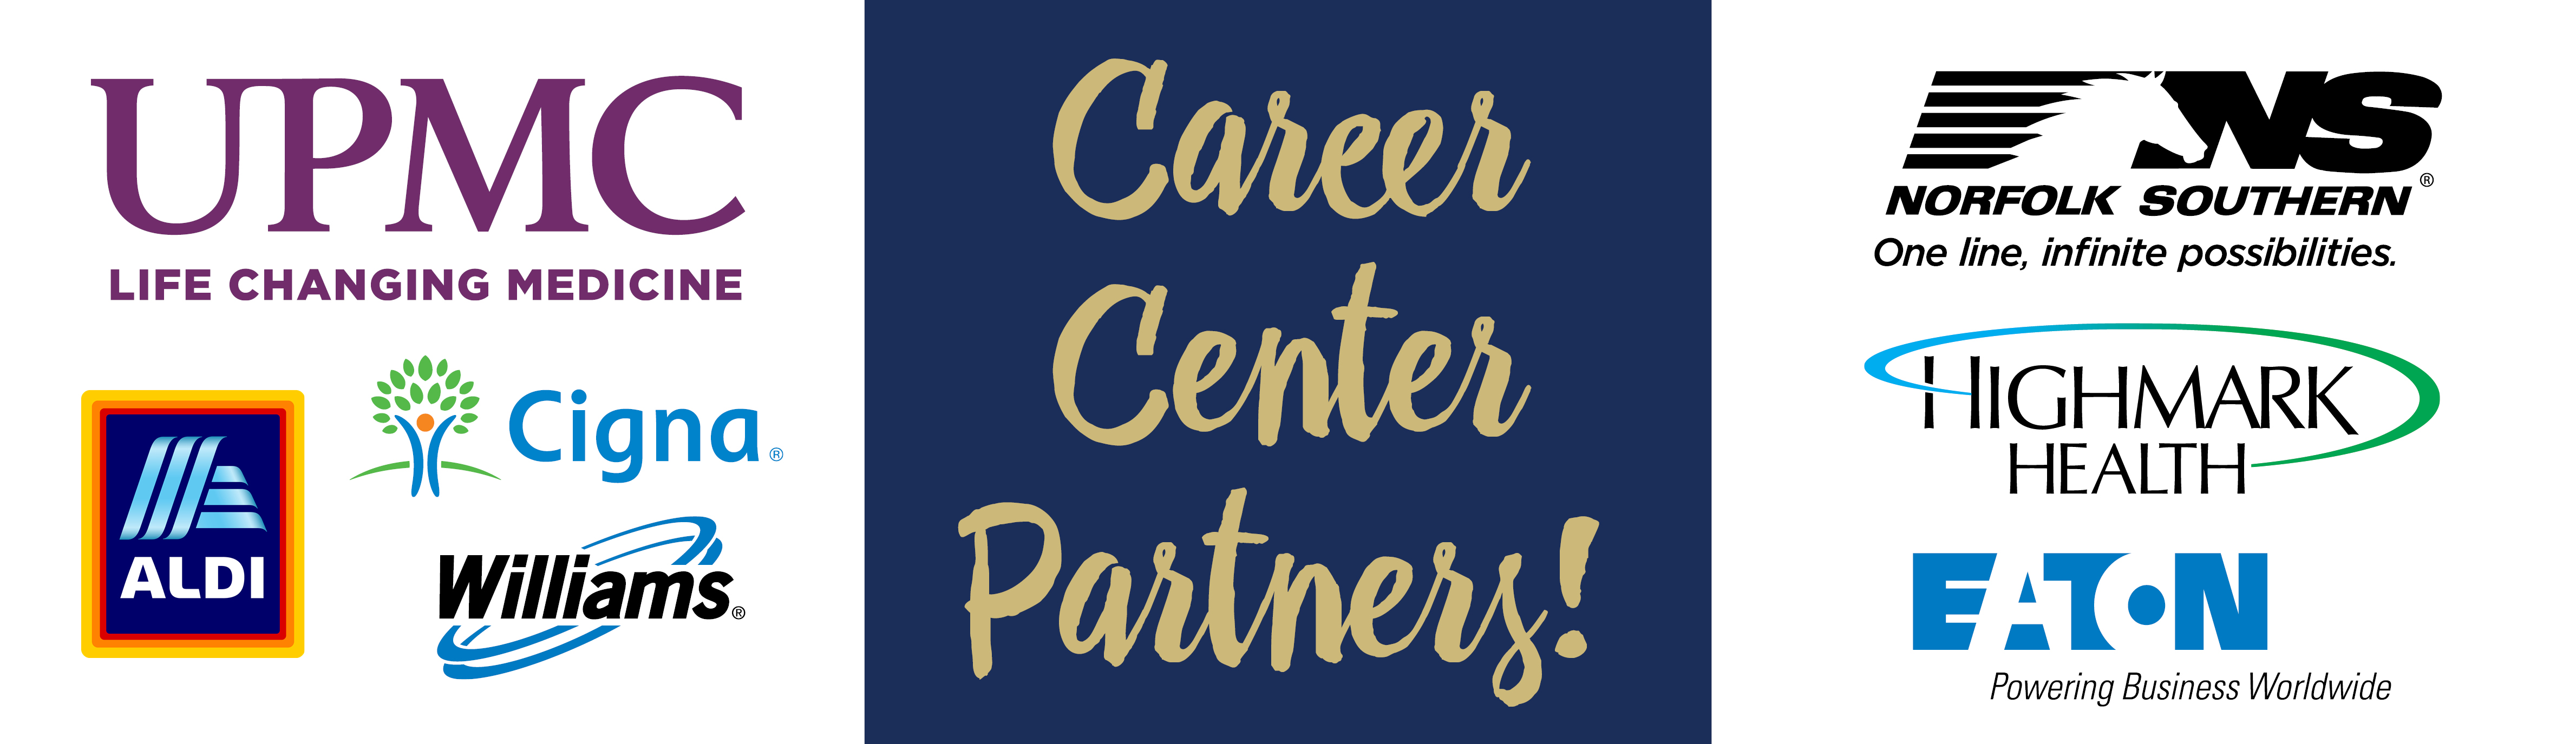 Career-Center-Partners-2018-2019